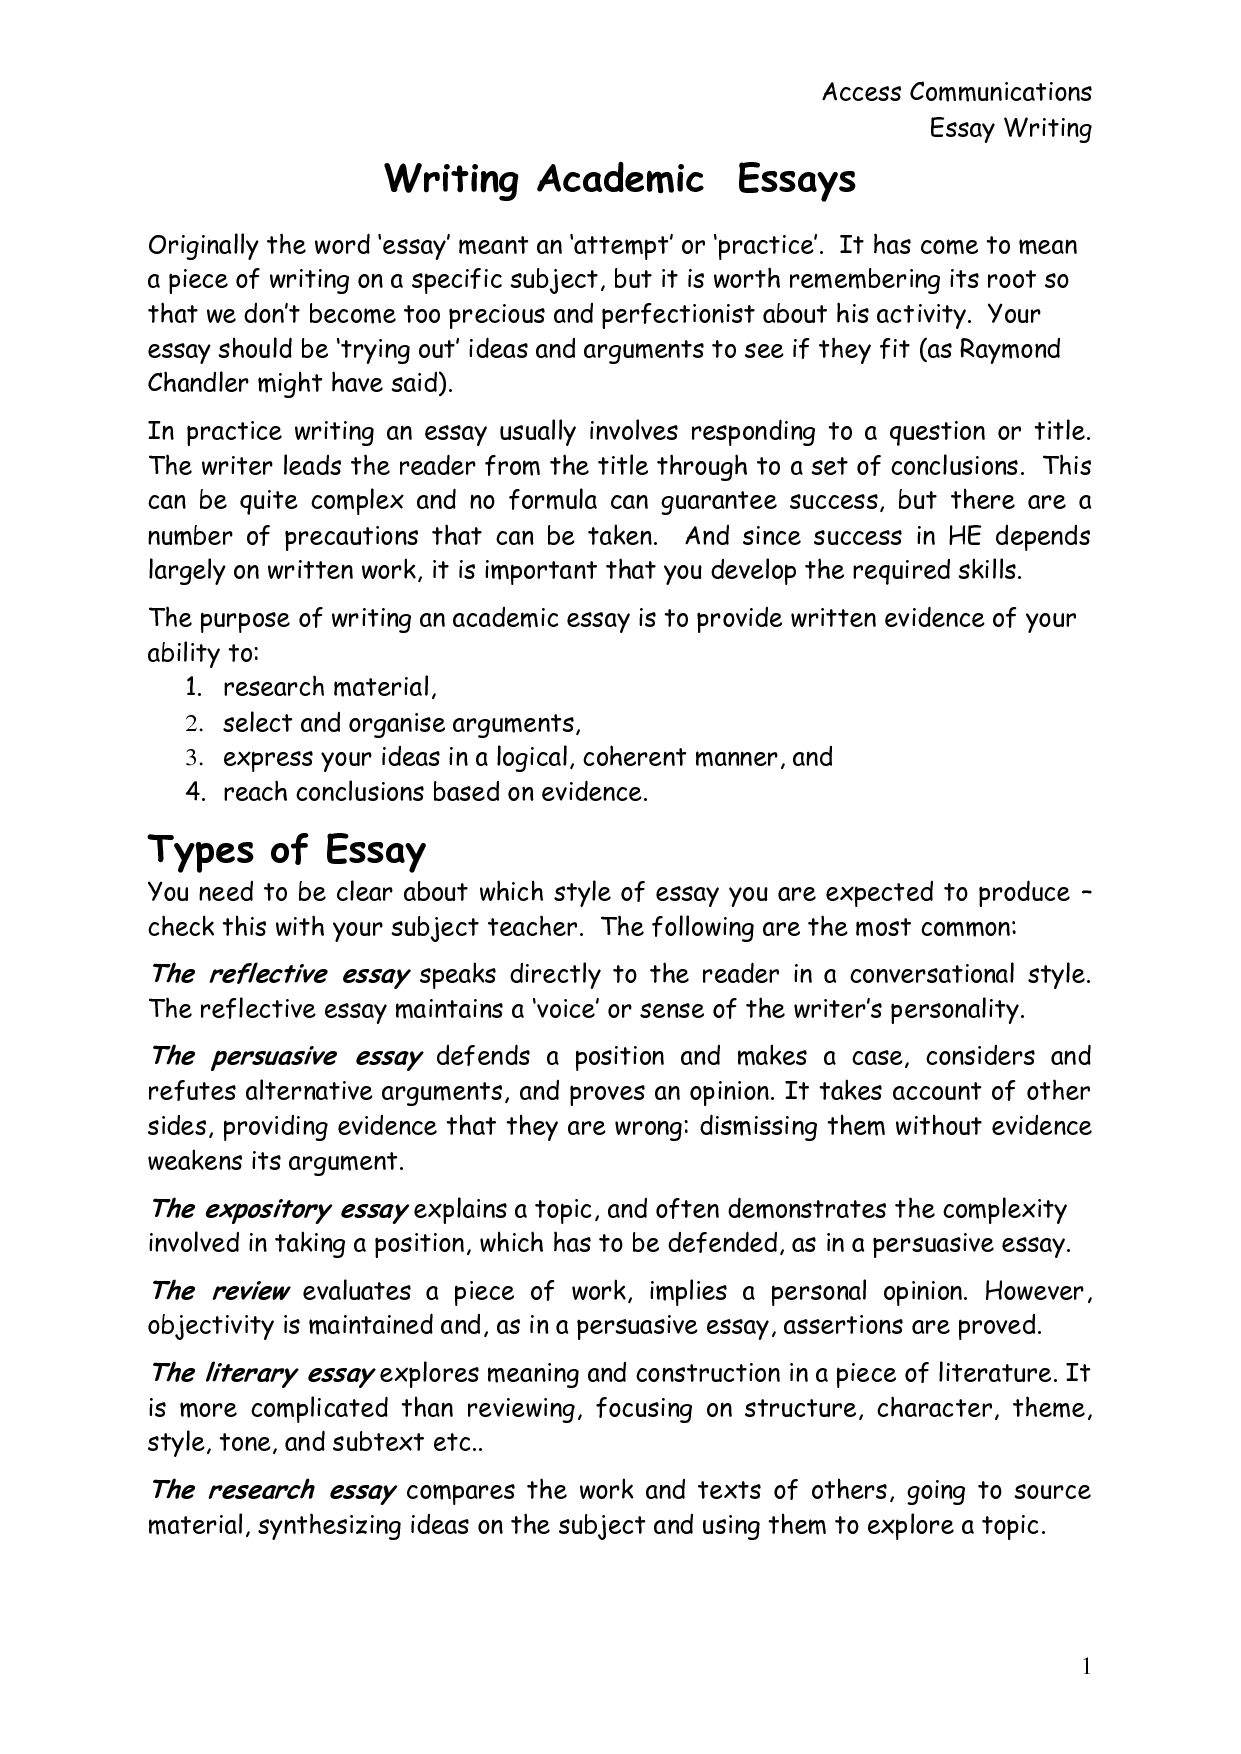 001 Write An Academic Essay Introduction How To Staggering Argumentative Pdf Ppt Effective Title Full